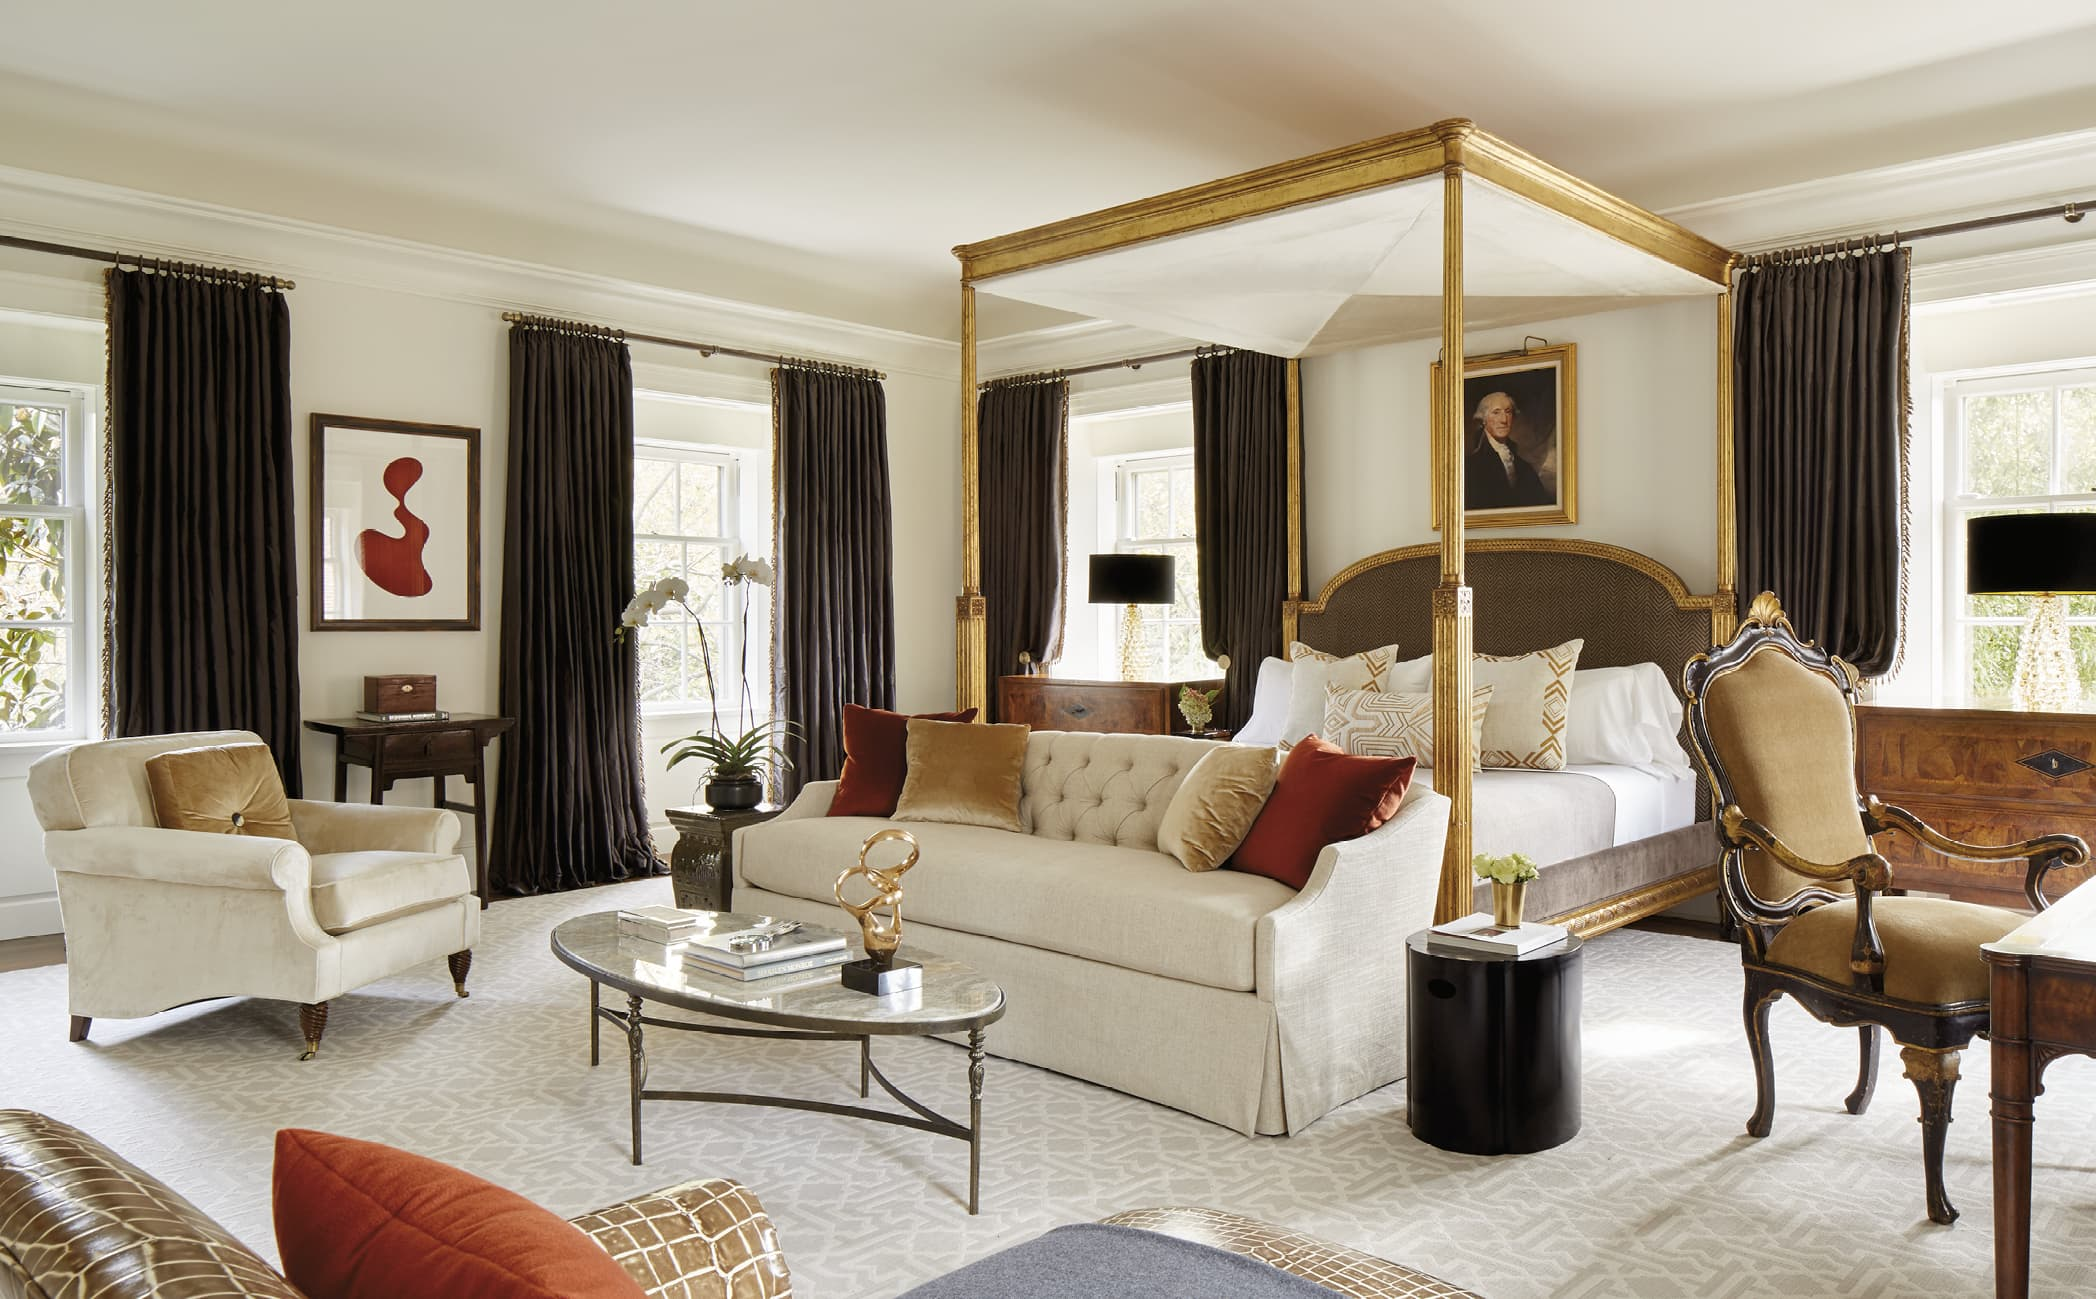 Large bedroom with canopy bed and seating area